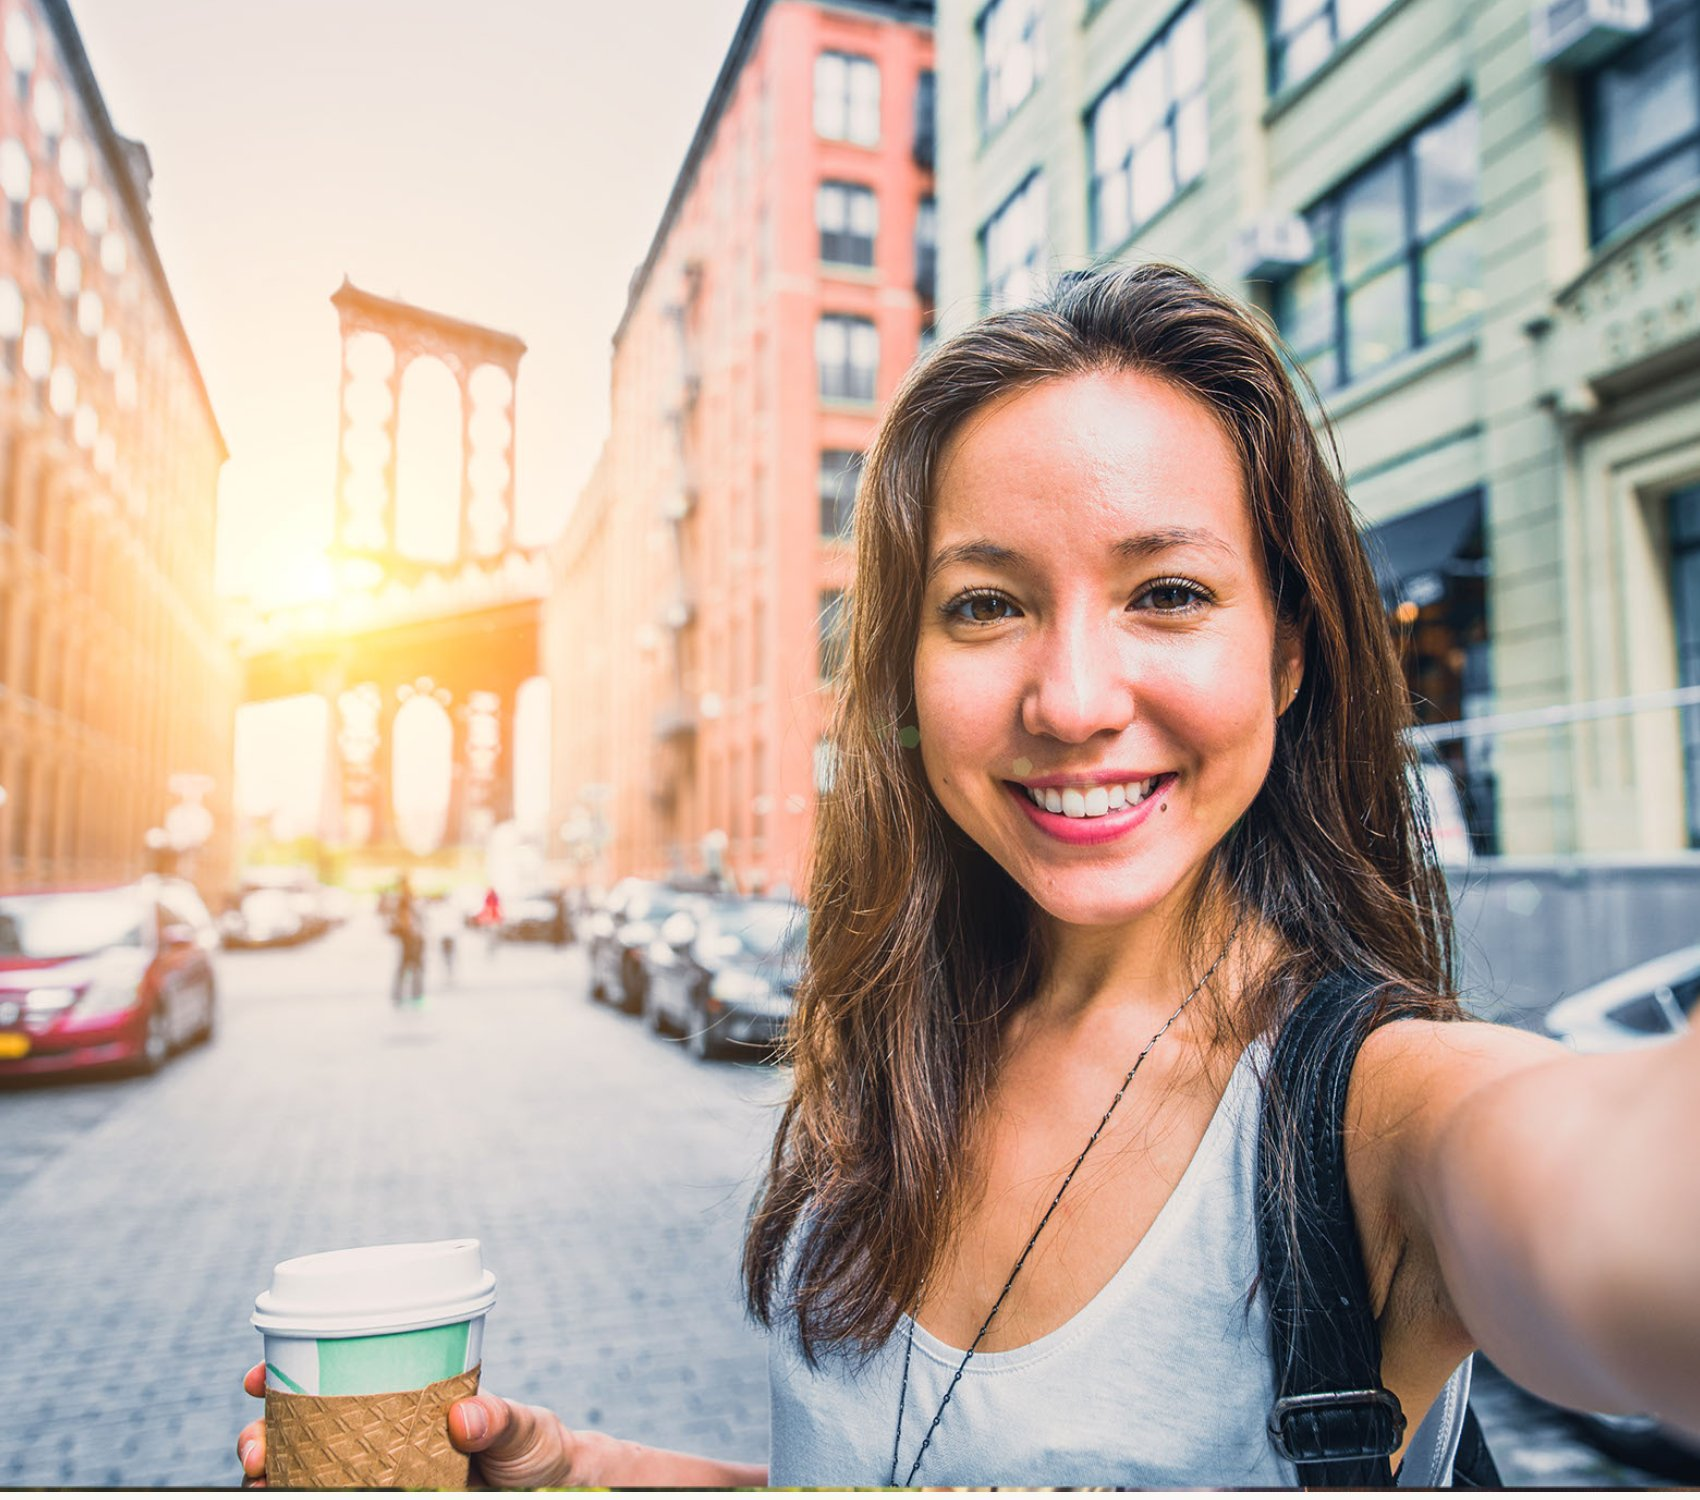 Selfie videos can be a way to create a digital record of your trip, as demonstrated by this woman standing in front of a bridge taking a selfie.